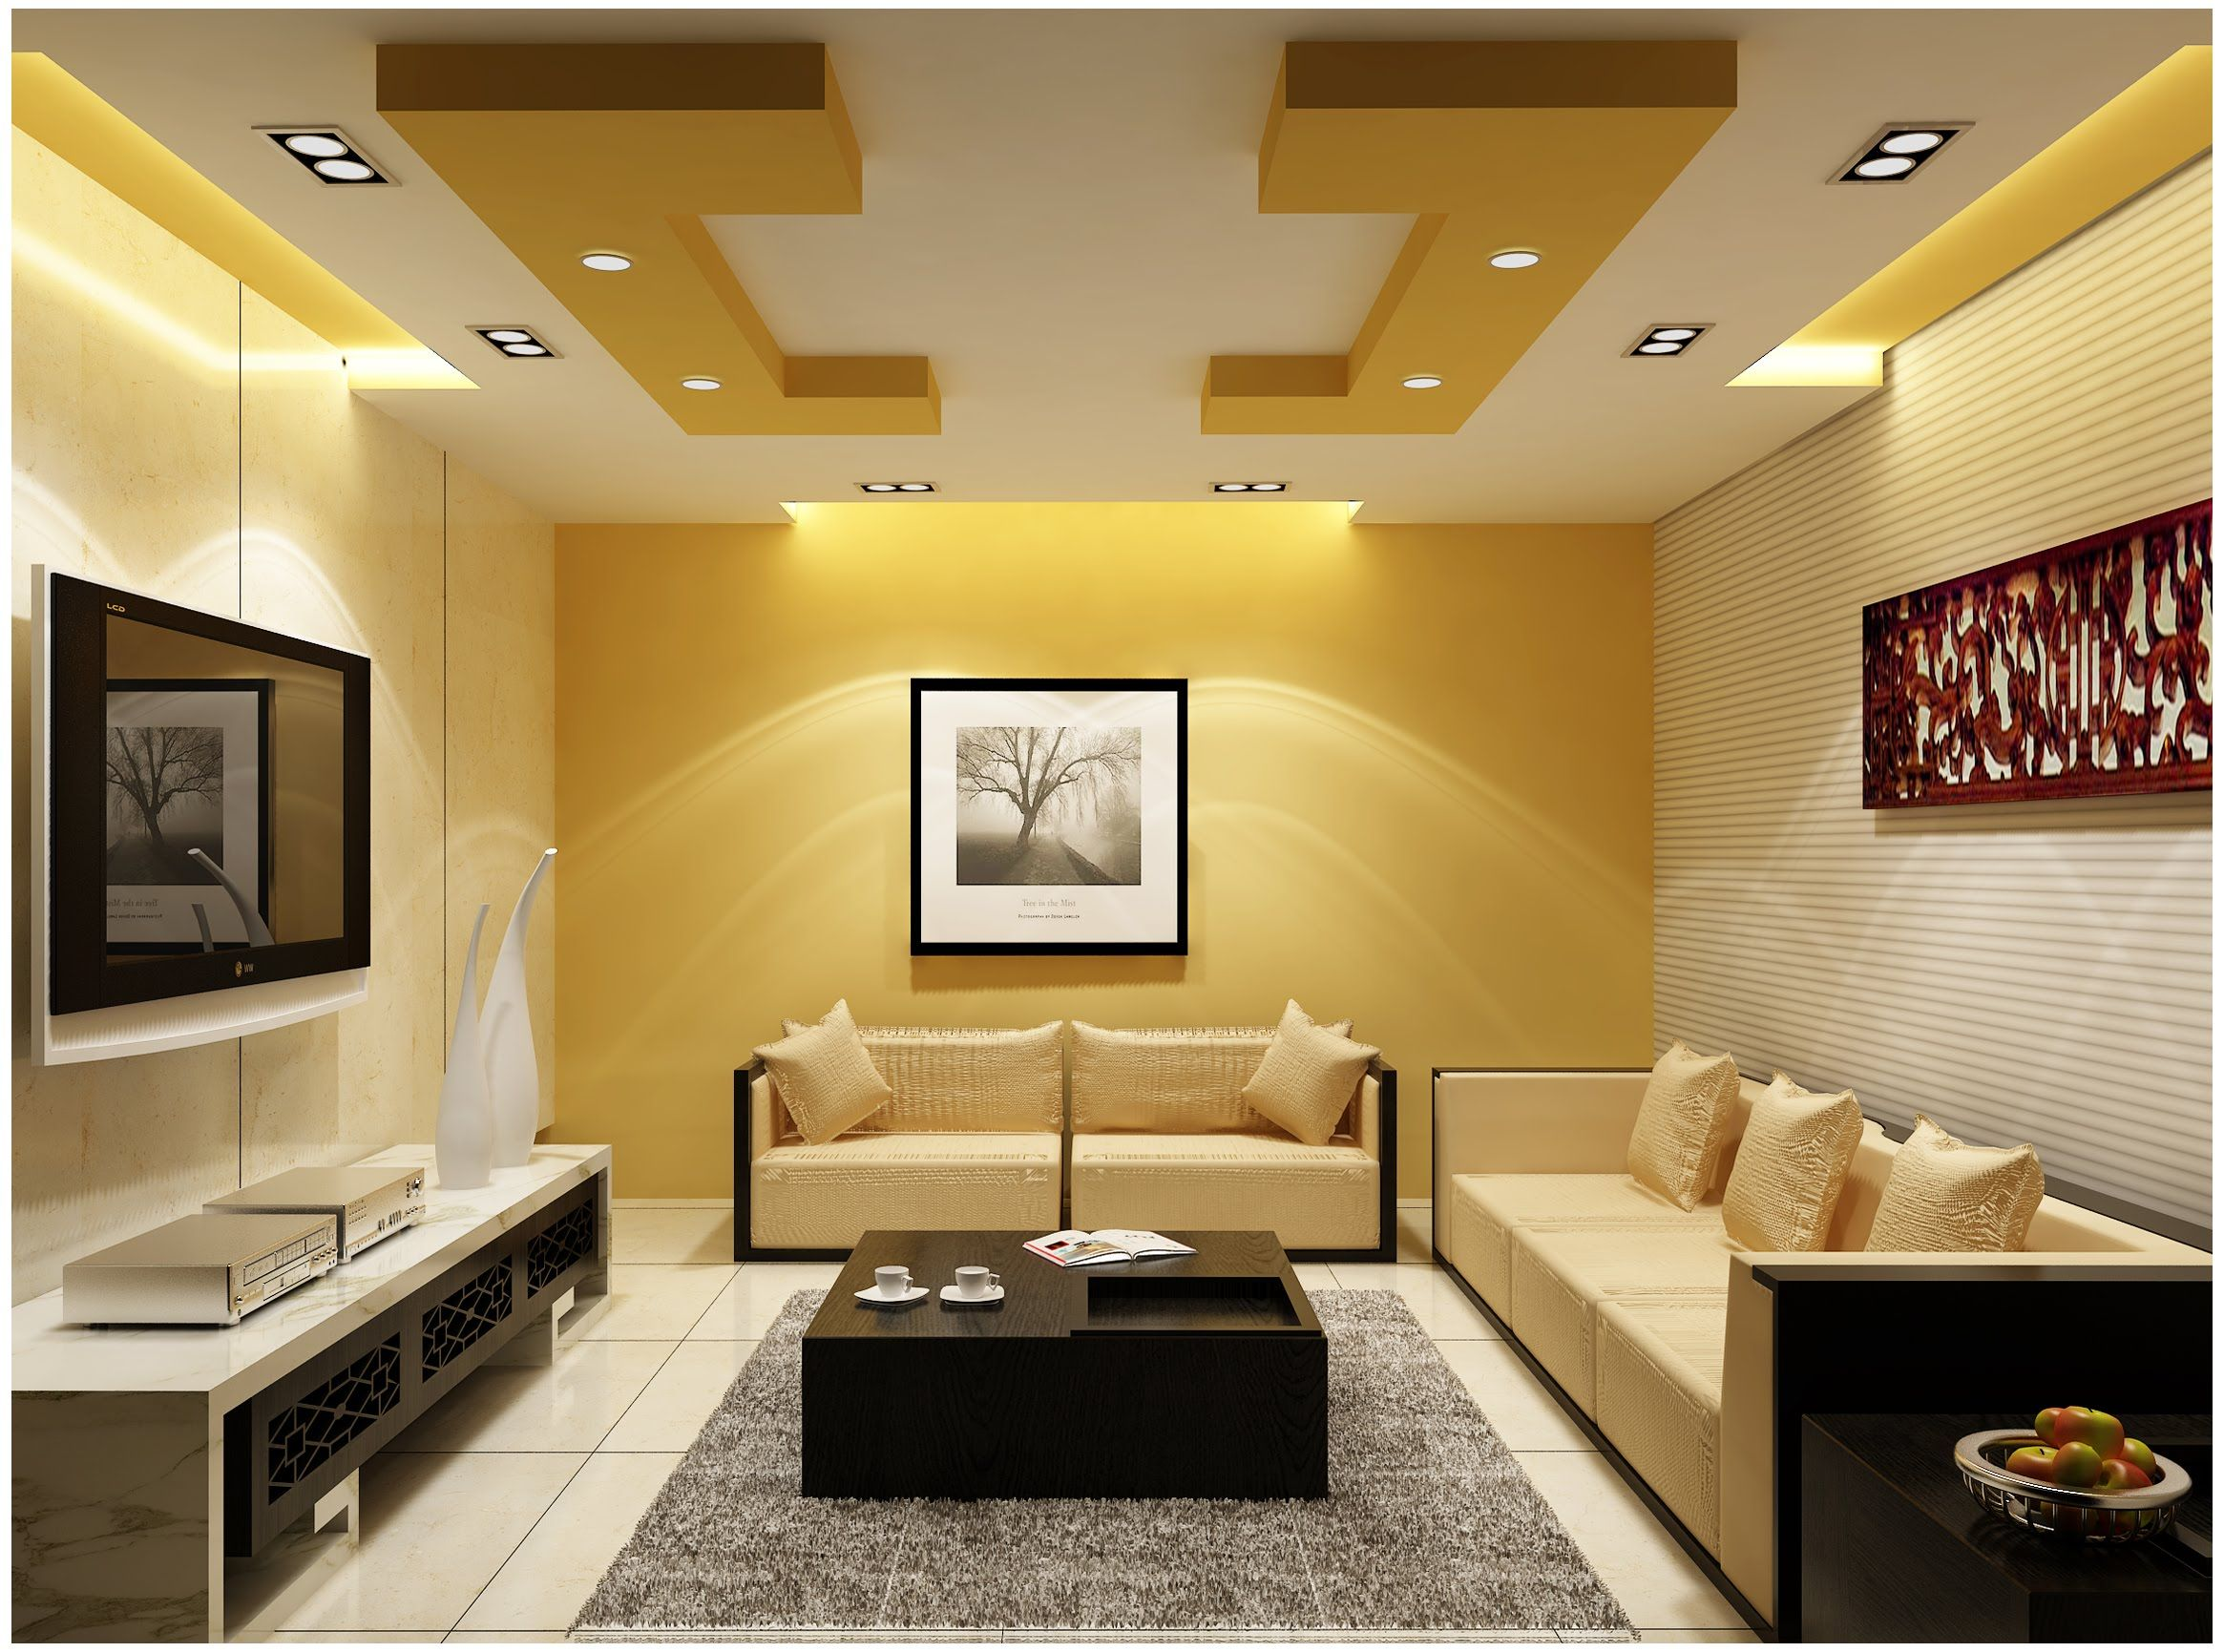 Simple Fall Ceiling Design For Living Room - Small House ...